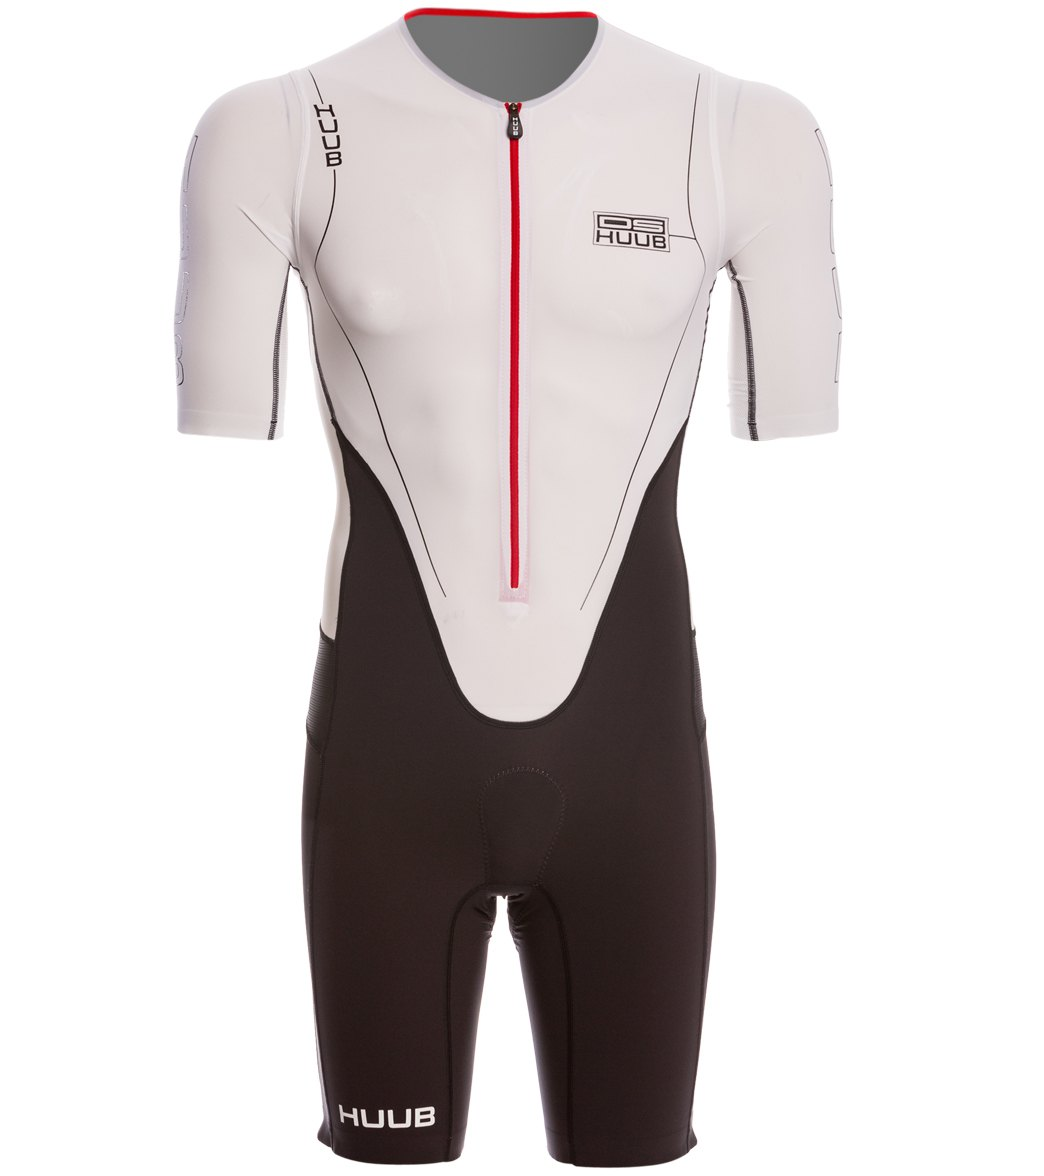 2f9e882eb16a46 Huub Dave Scott Long Course Sleeved Tri Suit at SwimOutlet.com - Free  Shipping